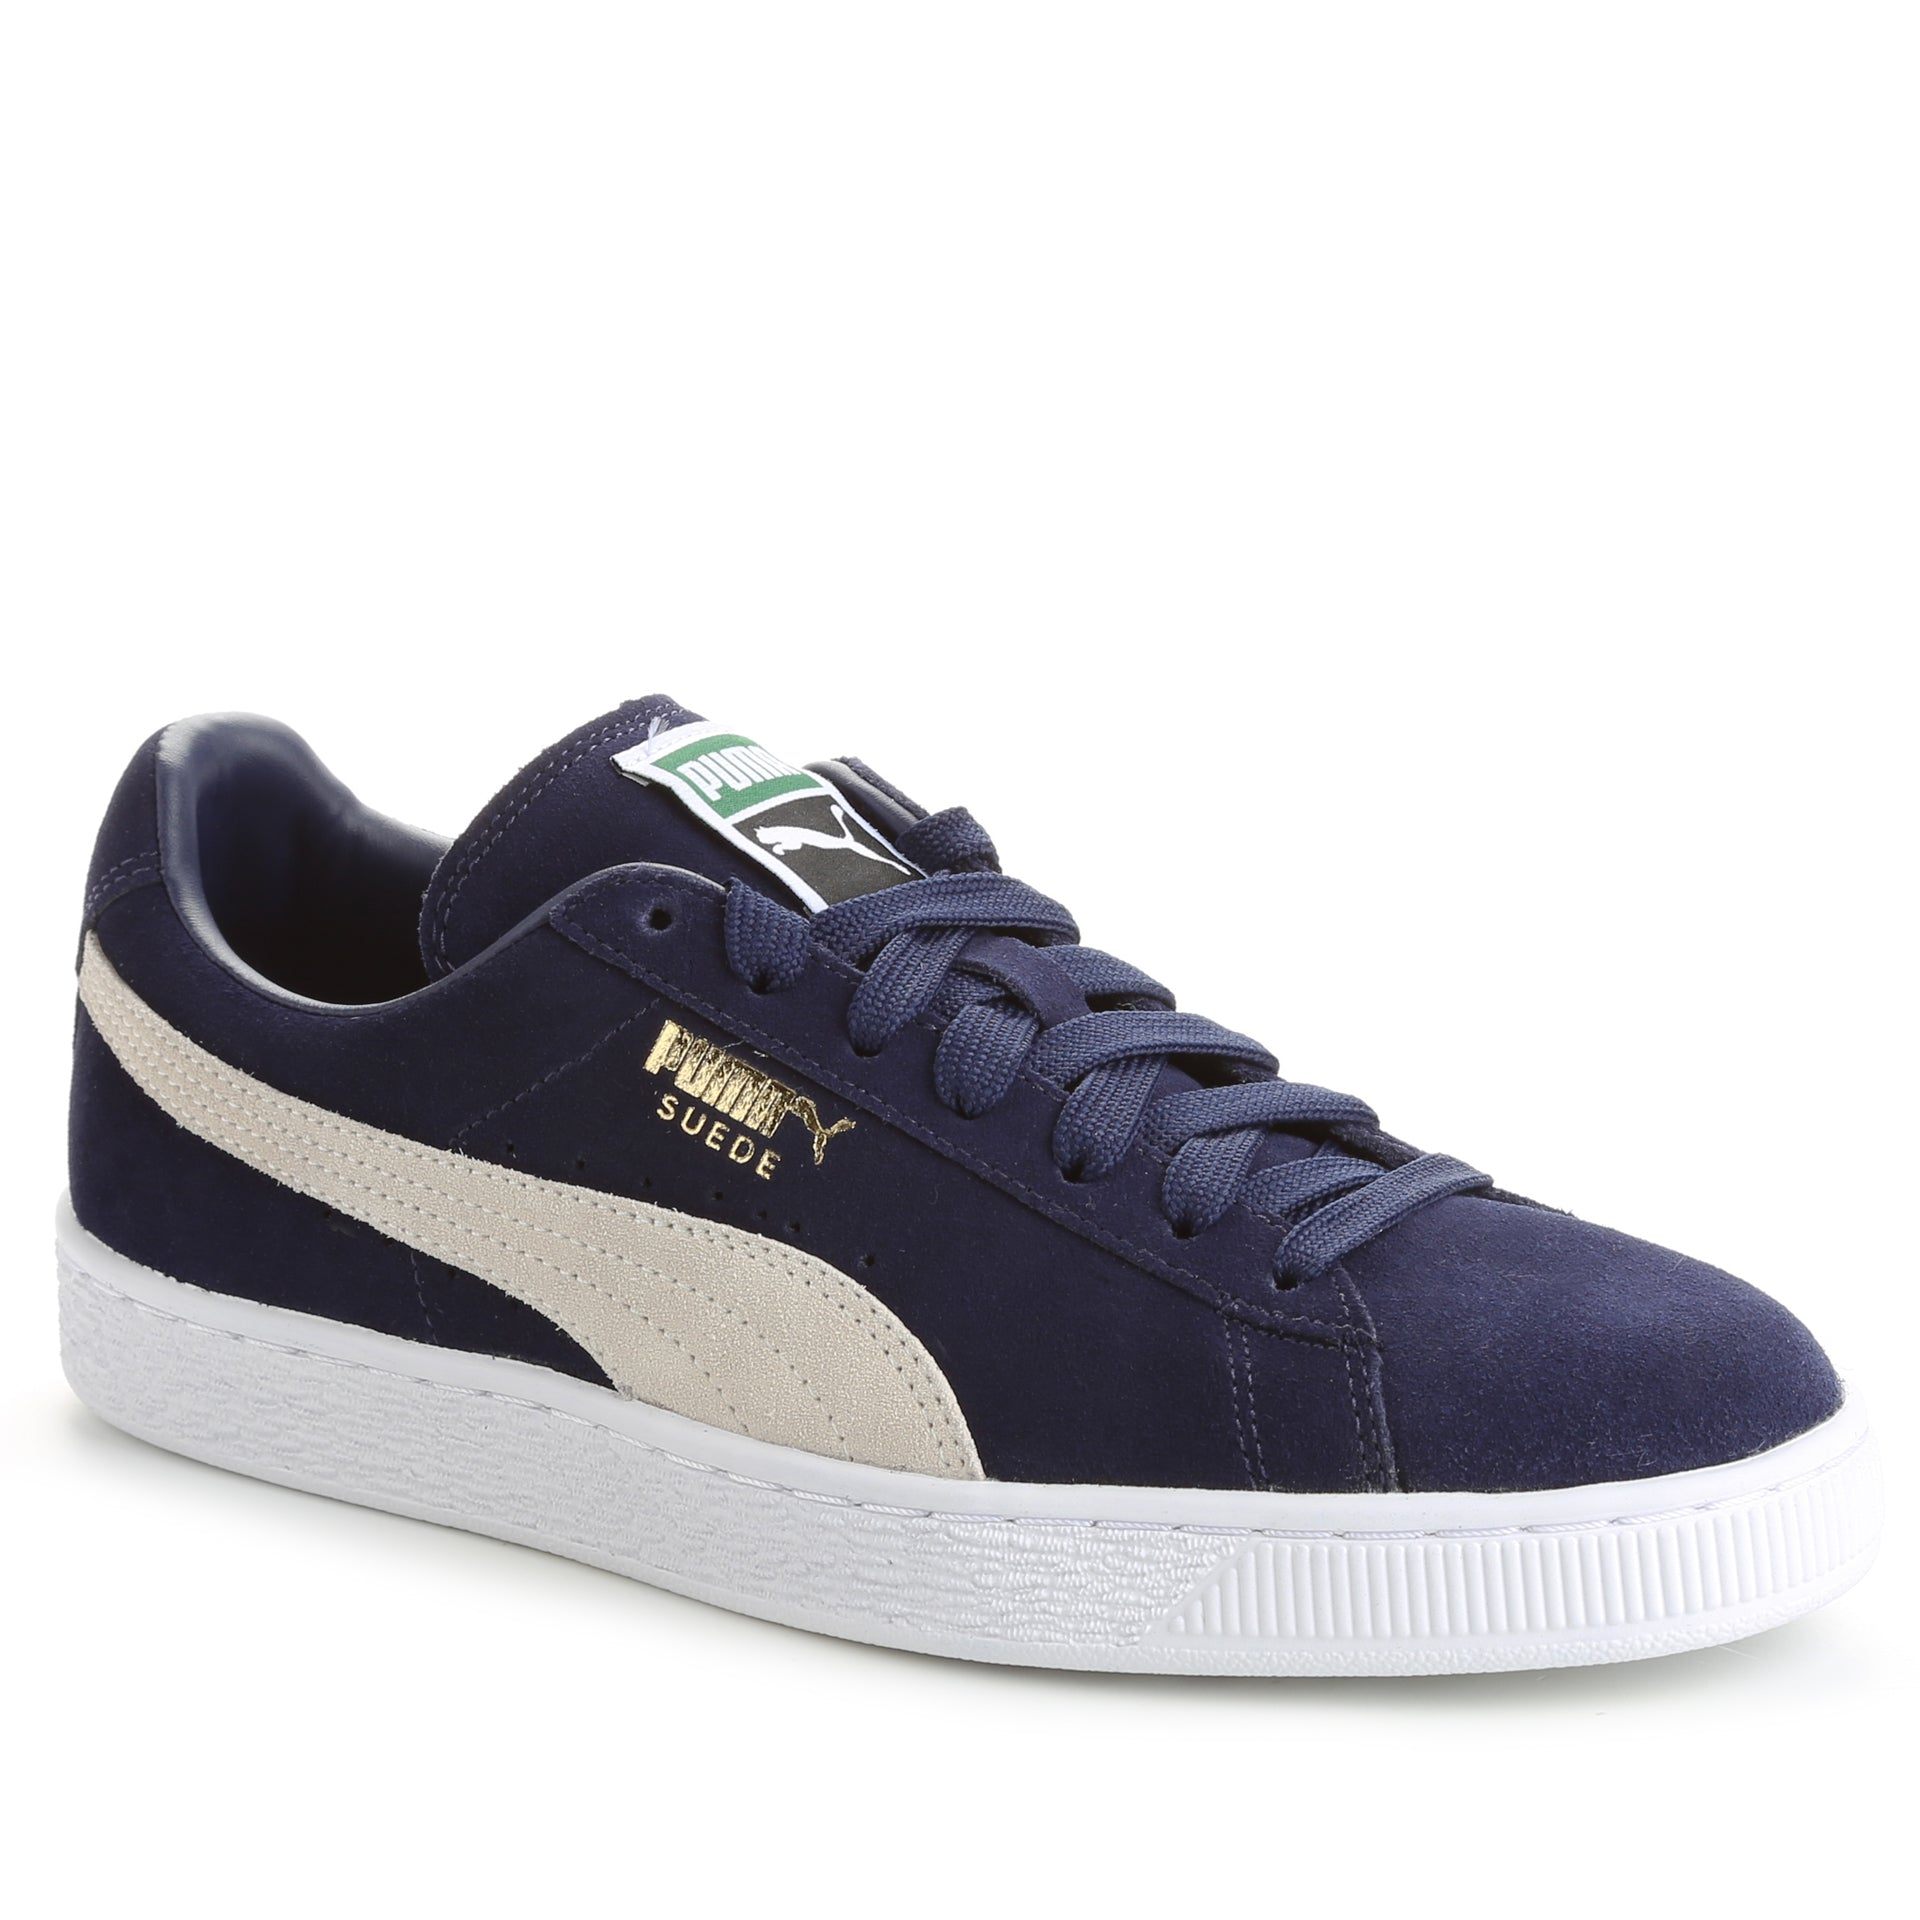 official photos 3d30f bf4c5 Puma Suede Classic - Peacoat/White - New Star